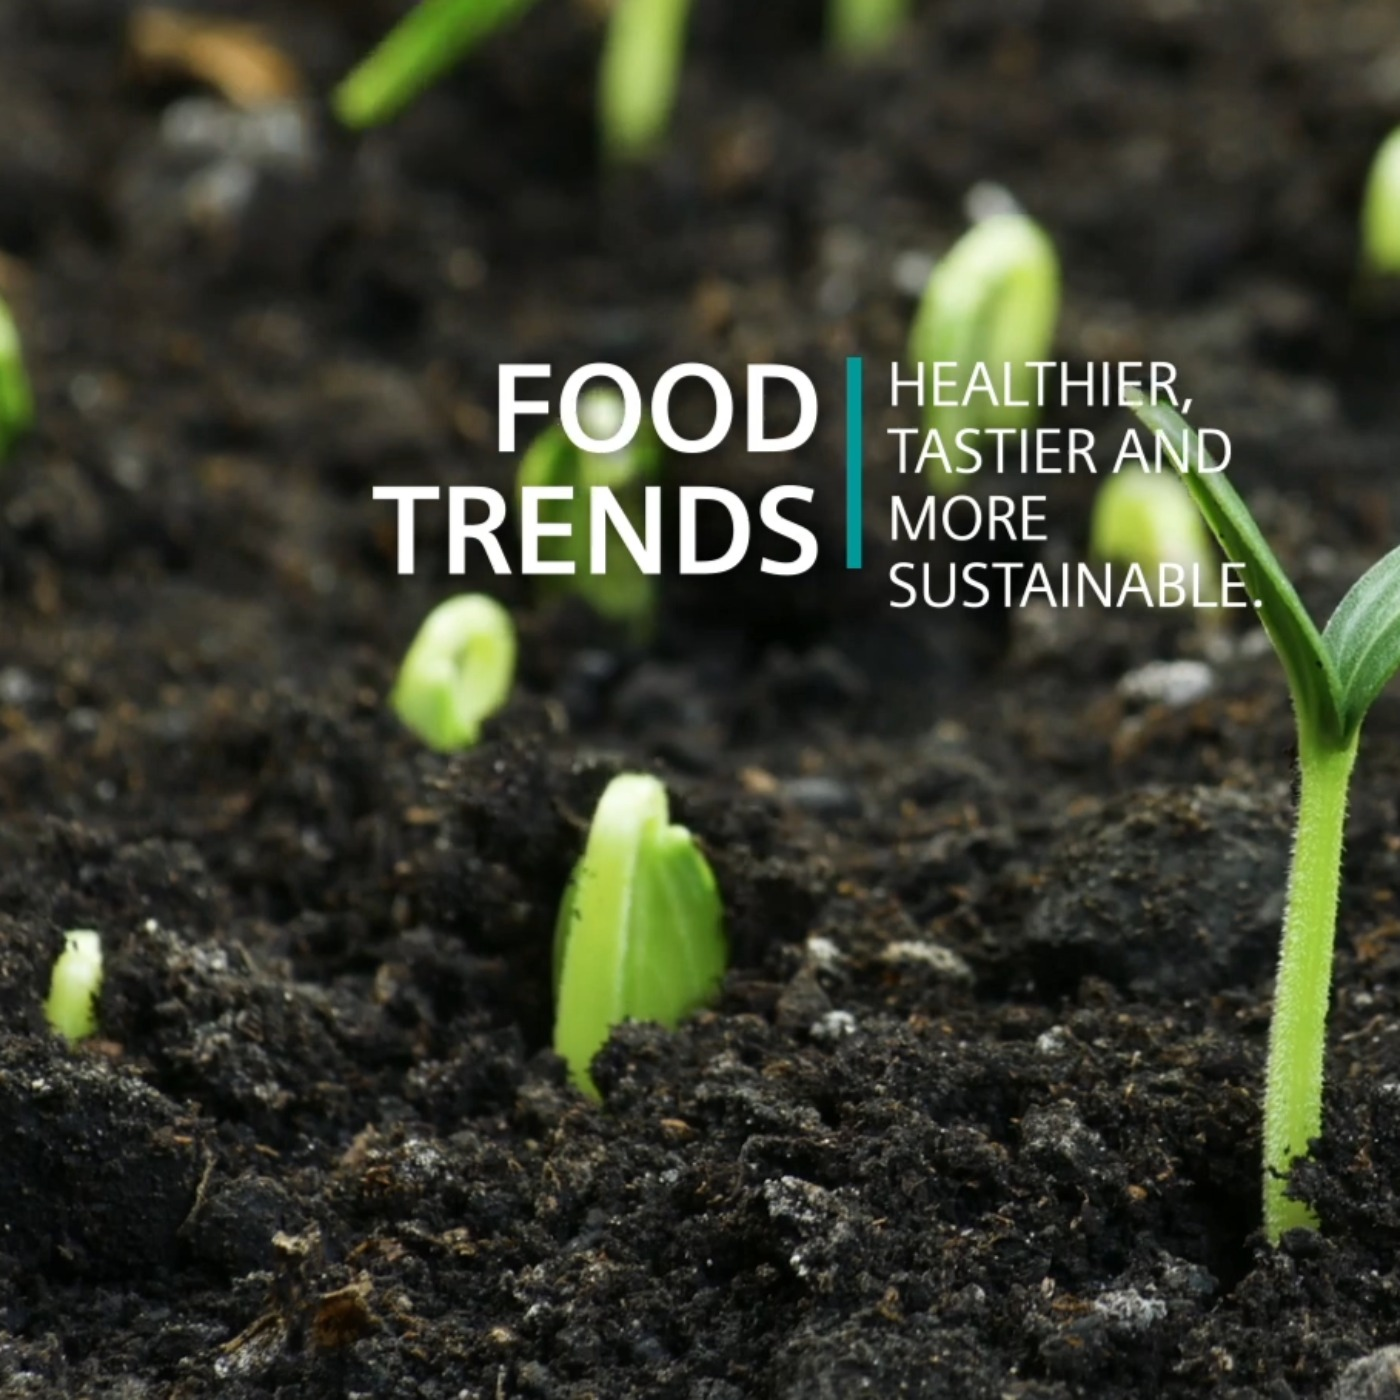 Food trends – healthier, tastier and more sustainable